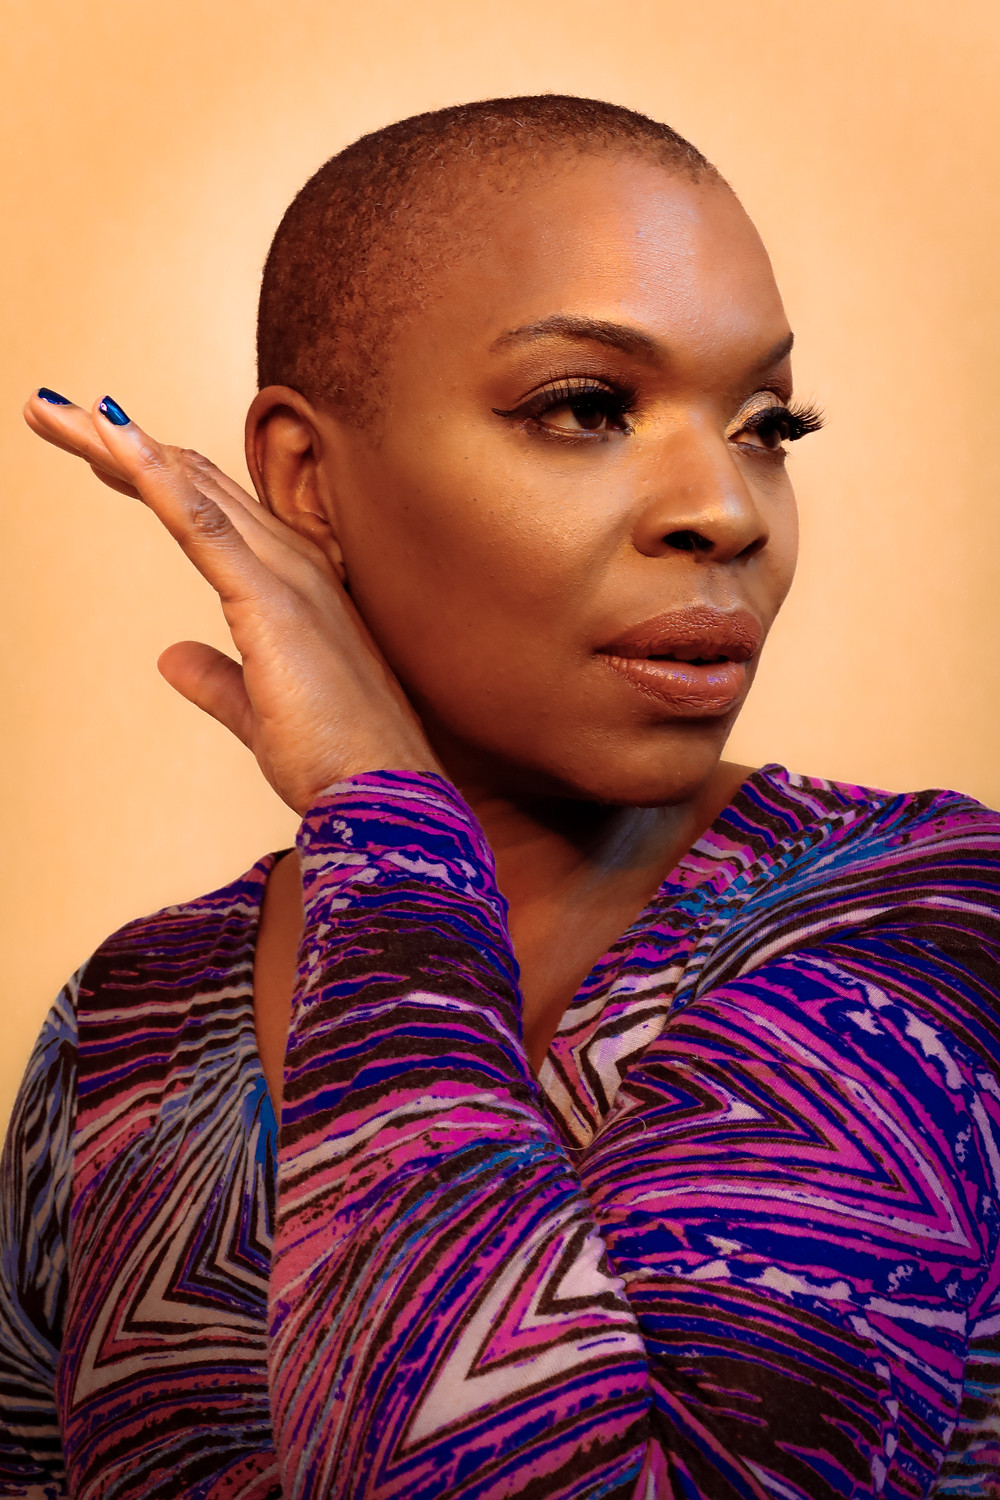 An image of Zazel, close up. She looks to the right with her hand resting against her face. She is a beautiful Black woman with cropped hair and wears a purple and pink top with striped patterns.